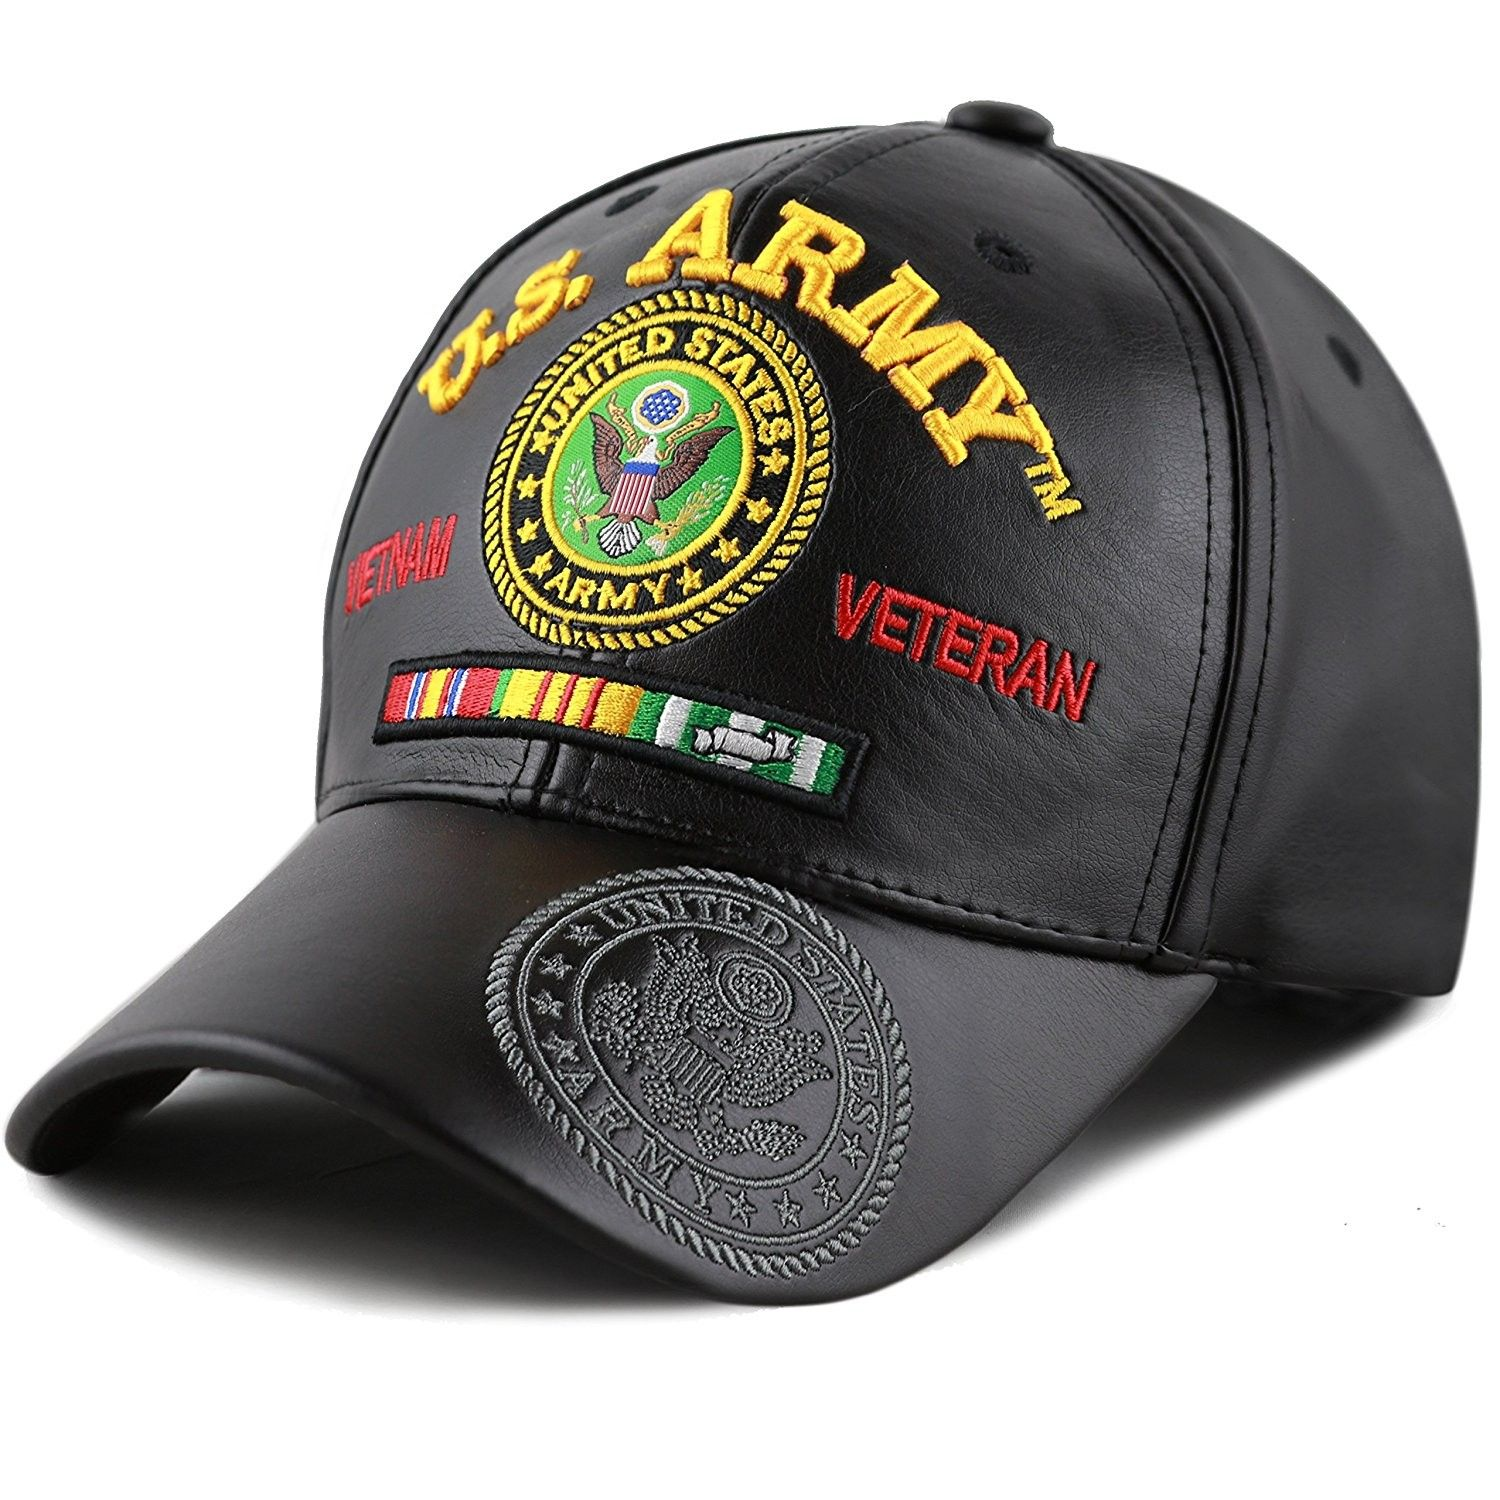 U.S Military Army 3-D Embroidered Officially Licensed Army Baseball Hat Cap